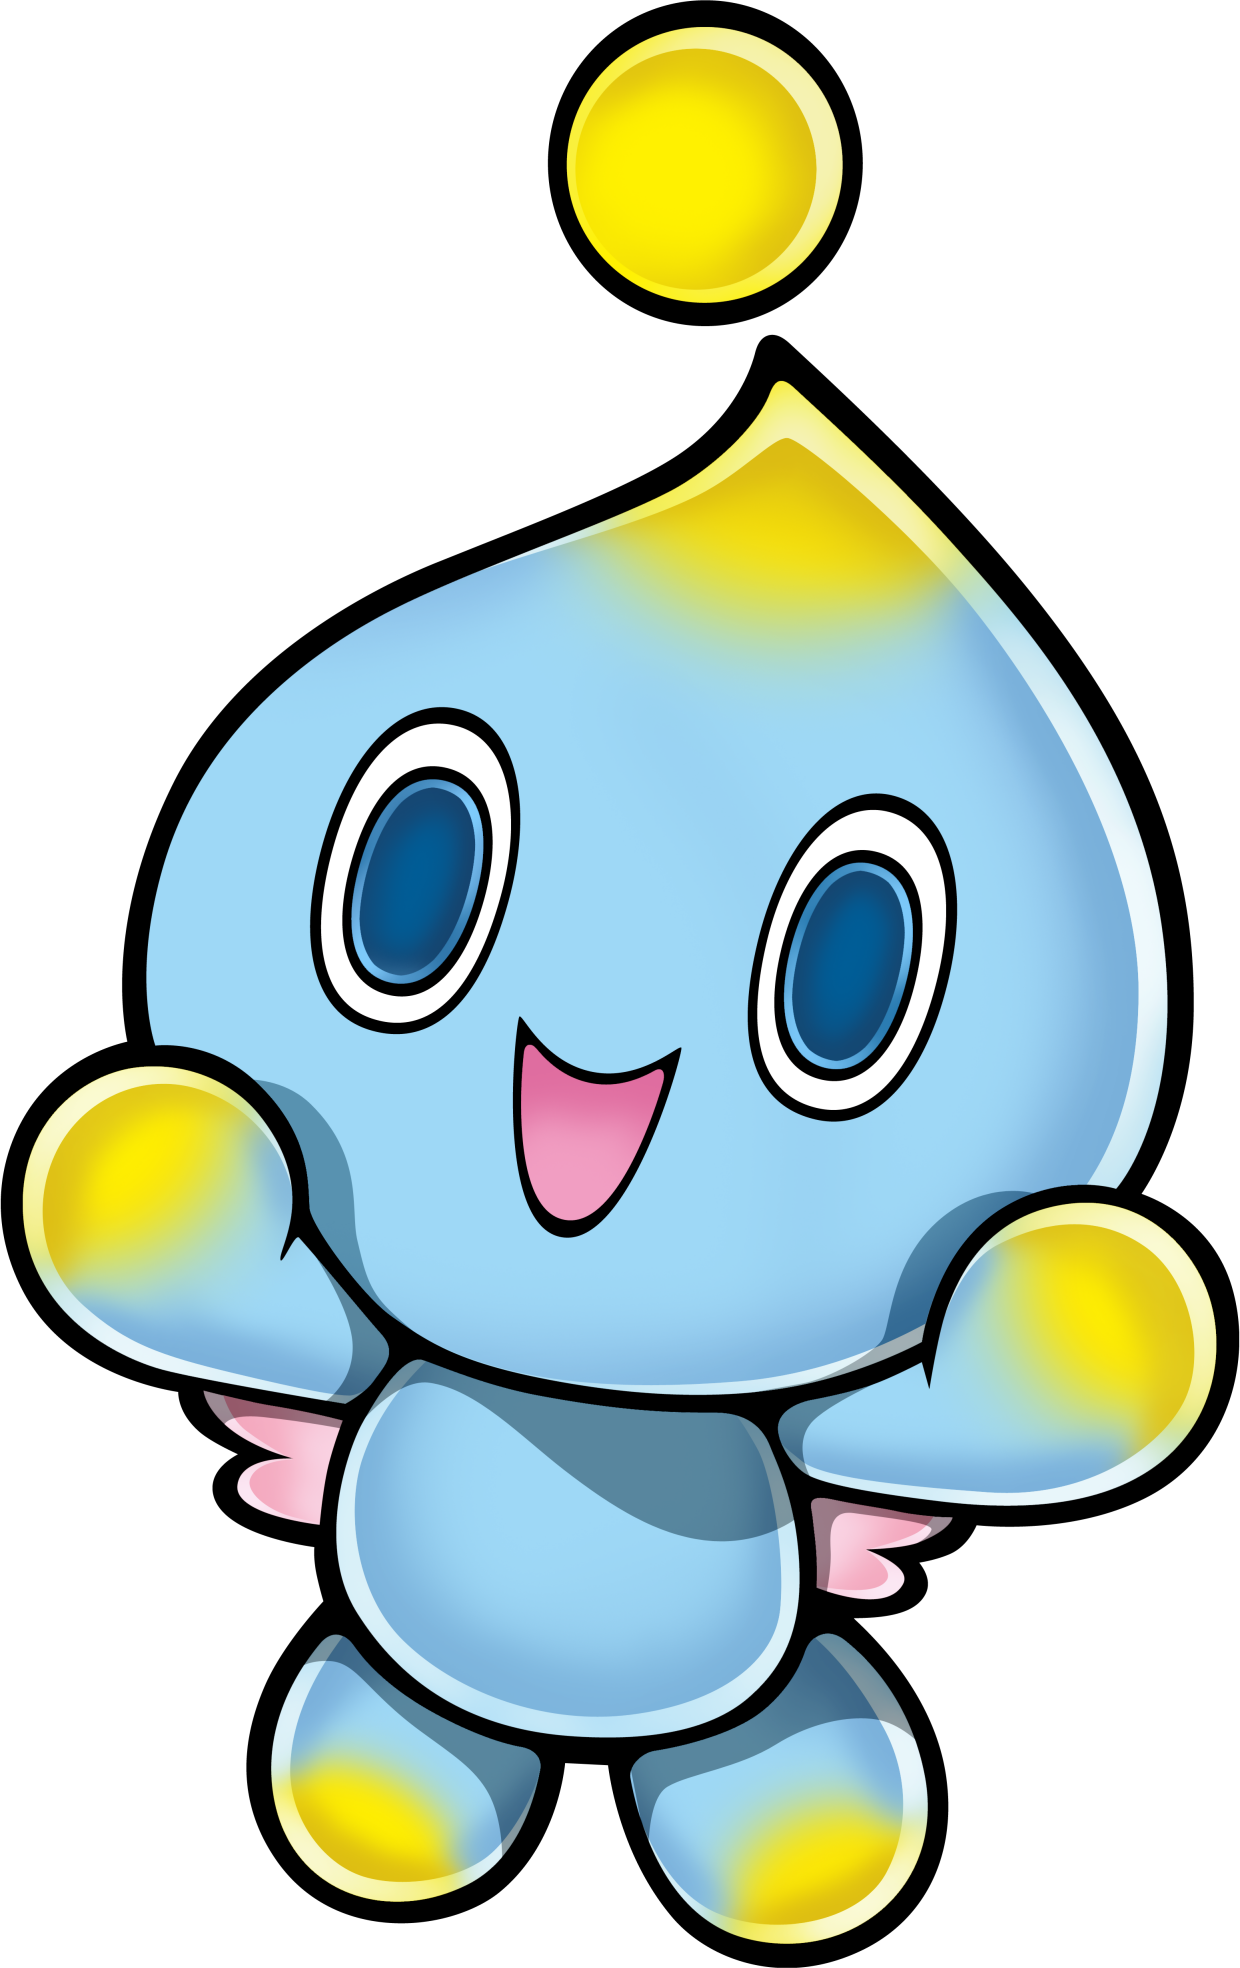 Transparent chao translucent. Image png sonic news